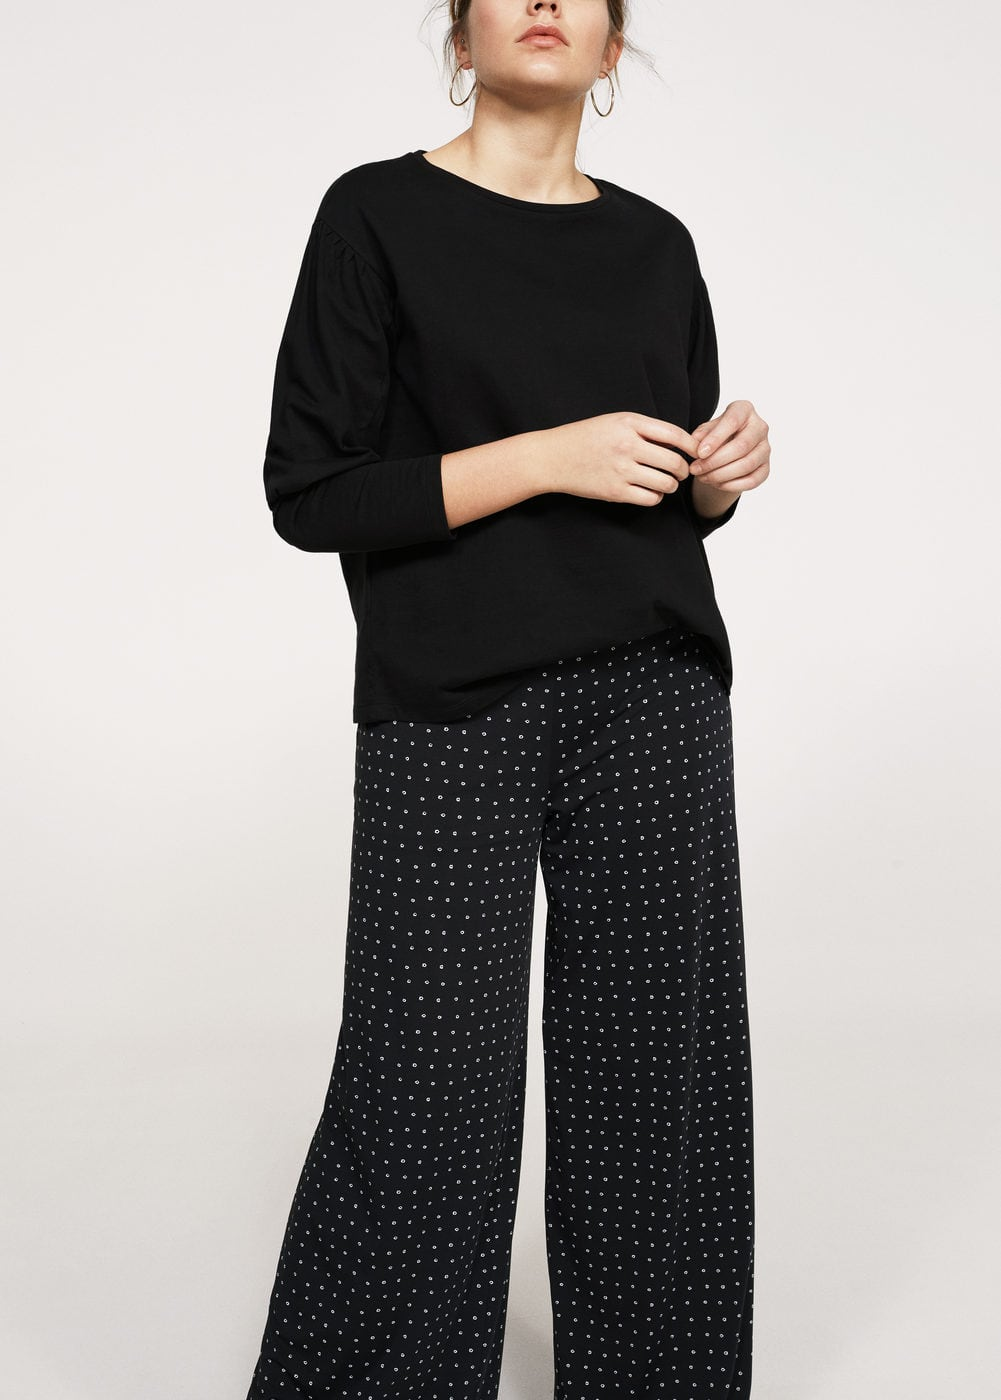 Polka dots flare trousers | VIOLETA BY MANGO